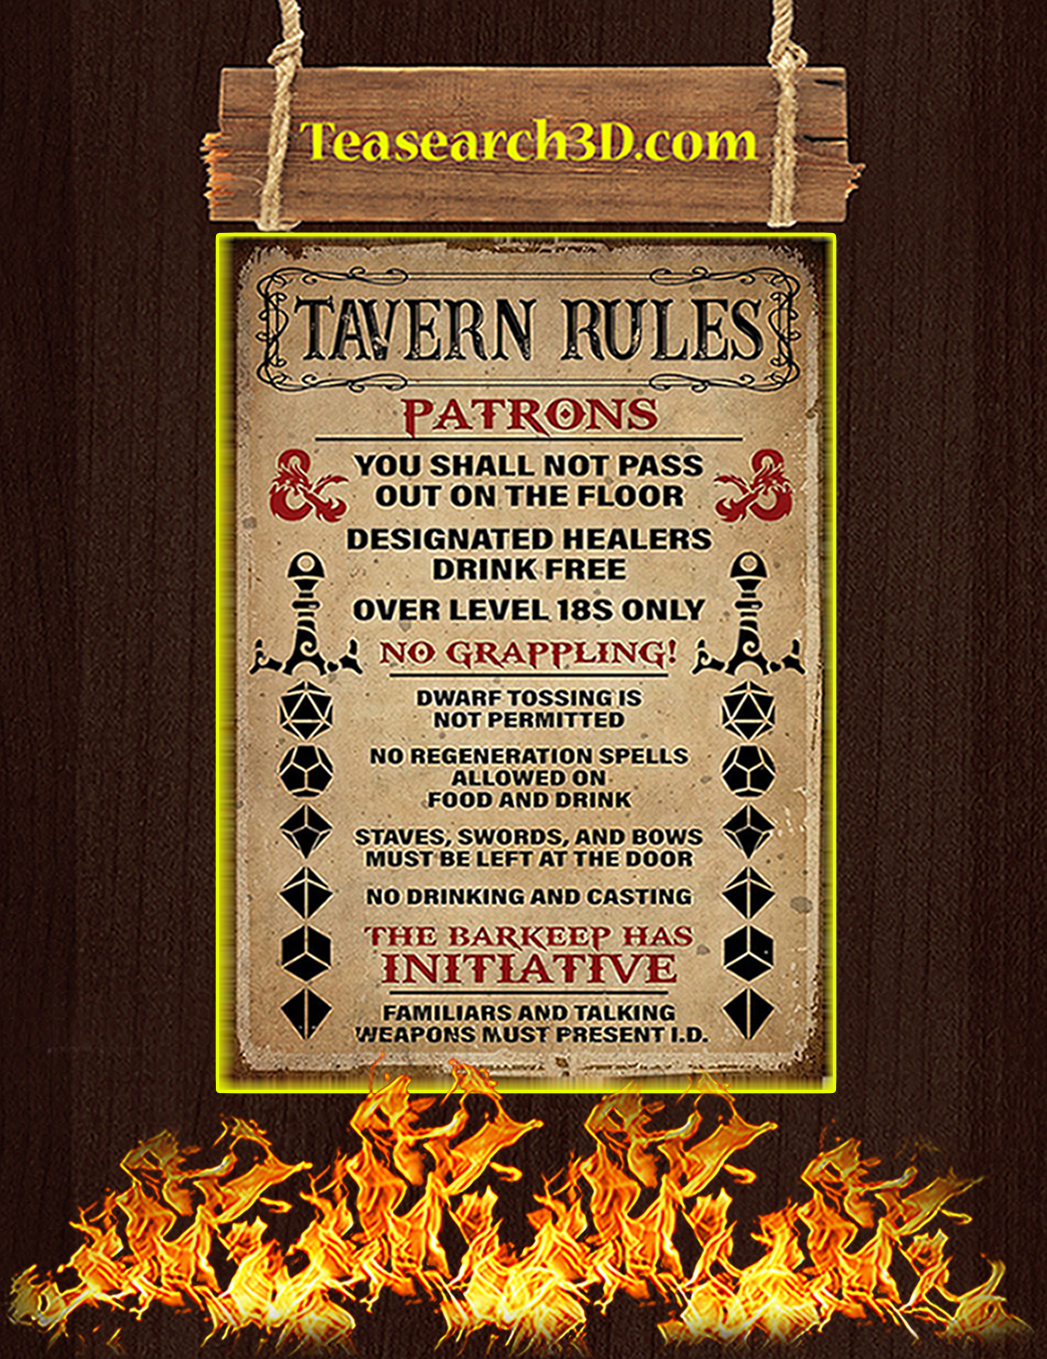 Game tavern rules patrons poster A1